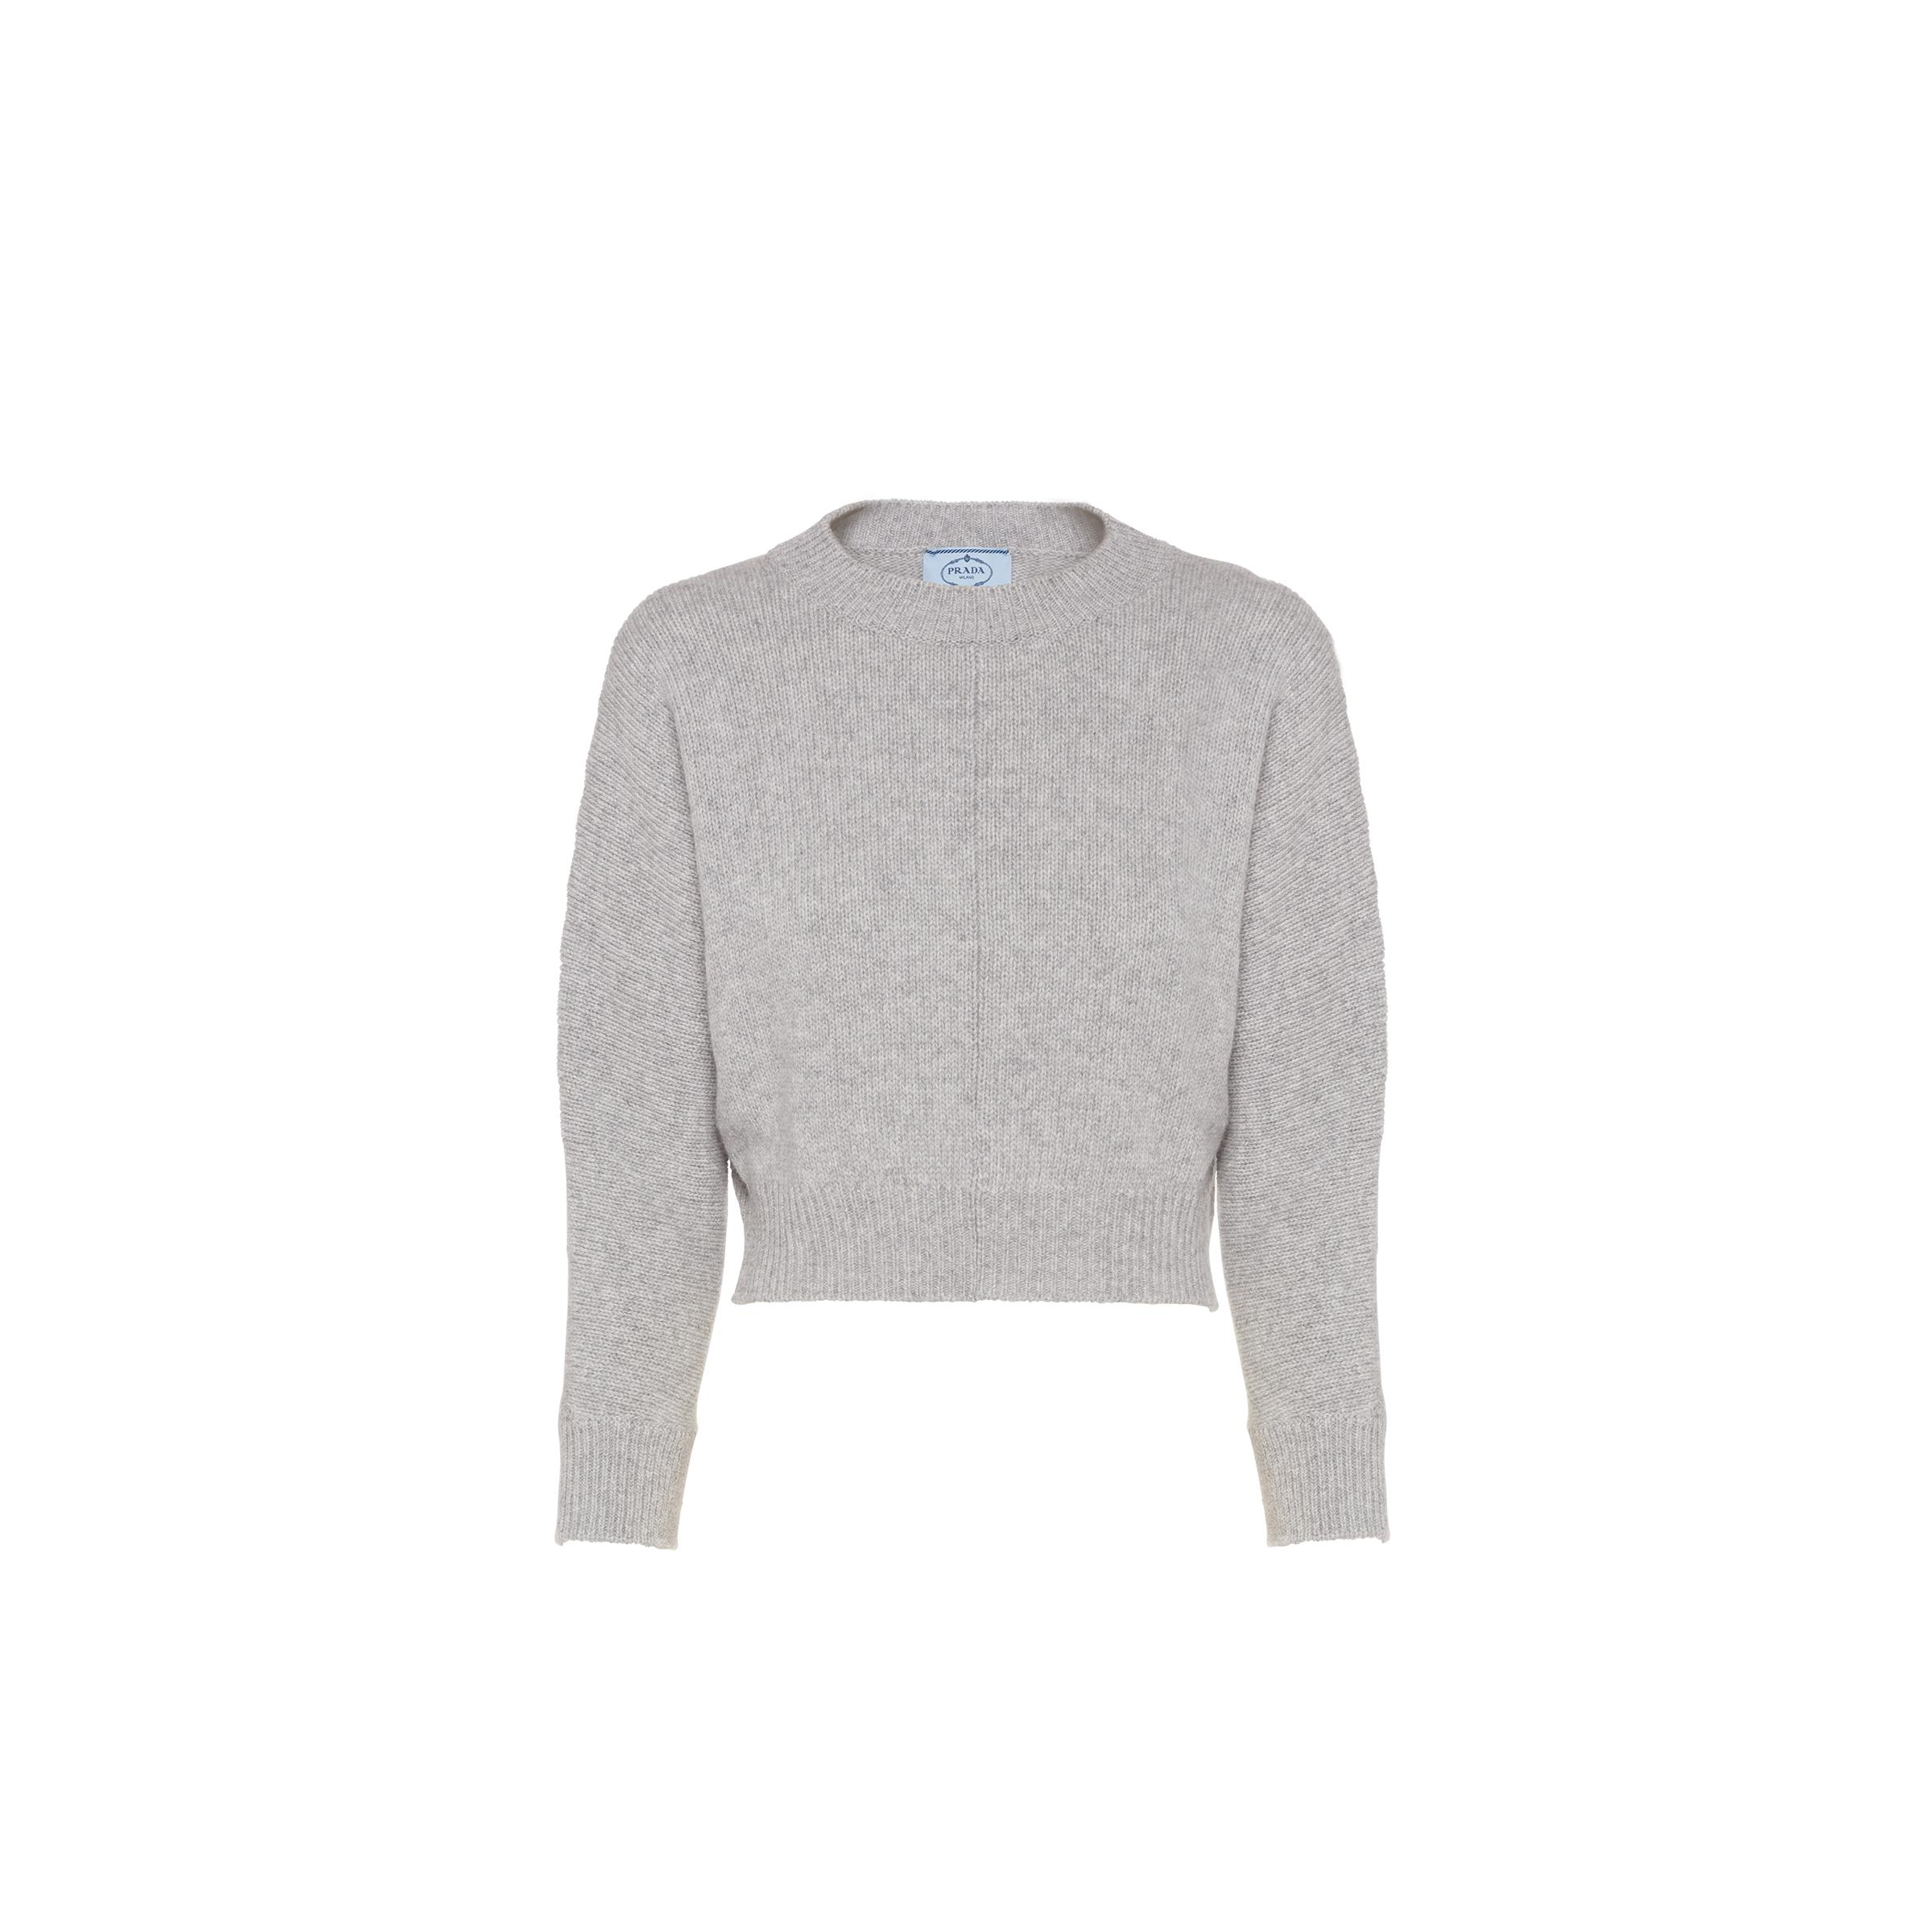 Cashmere Wool Crew-neck Sweater Women Marble Gray